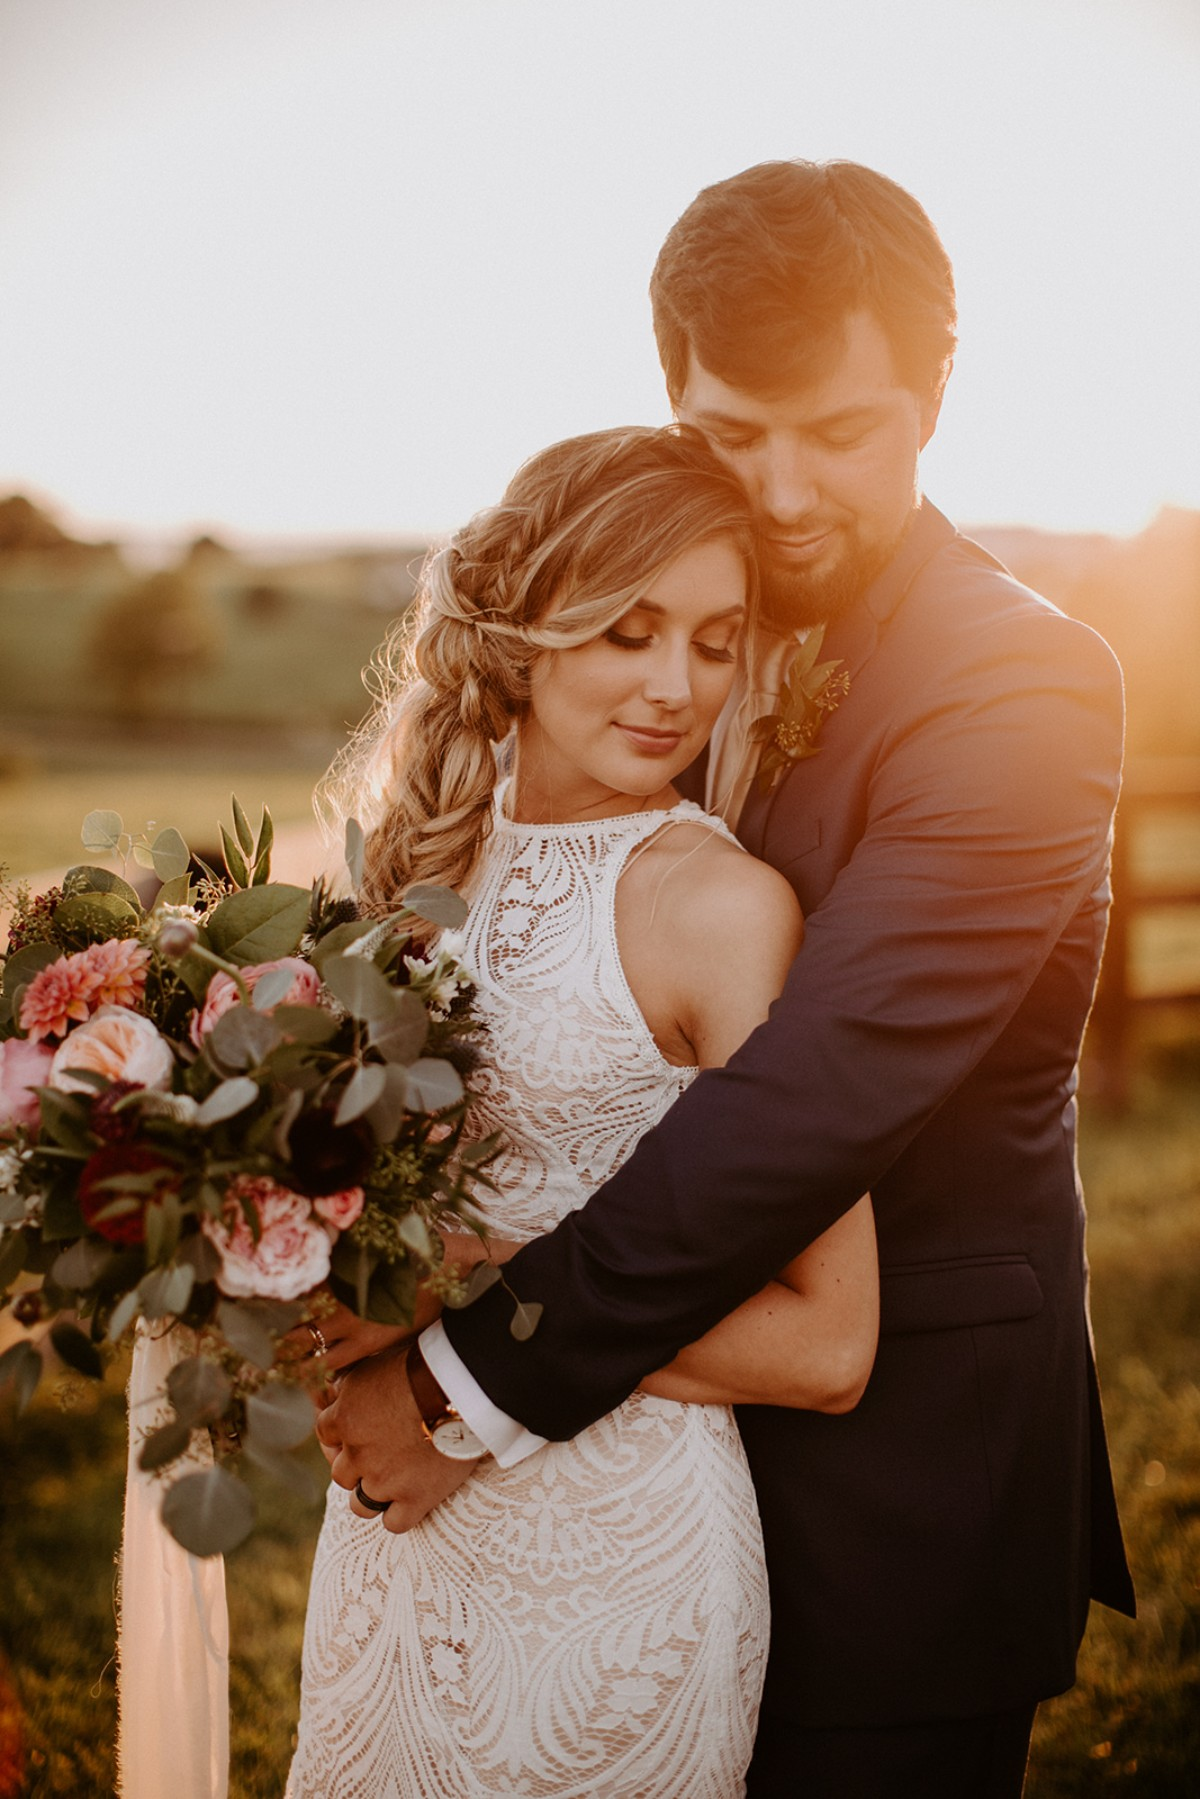 Rachel and Nicks romantic laid-back wedding